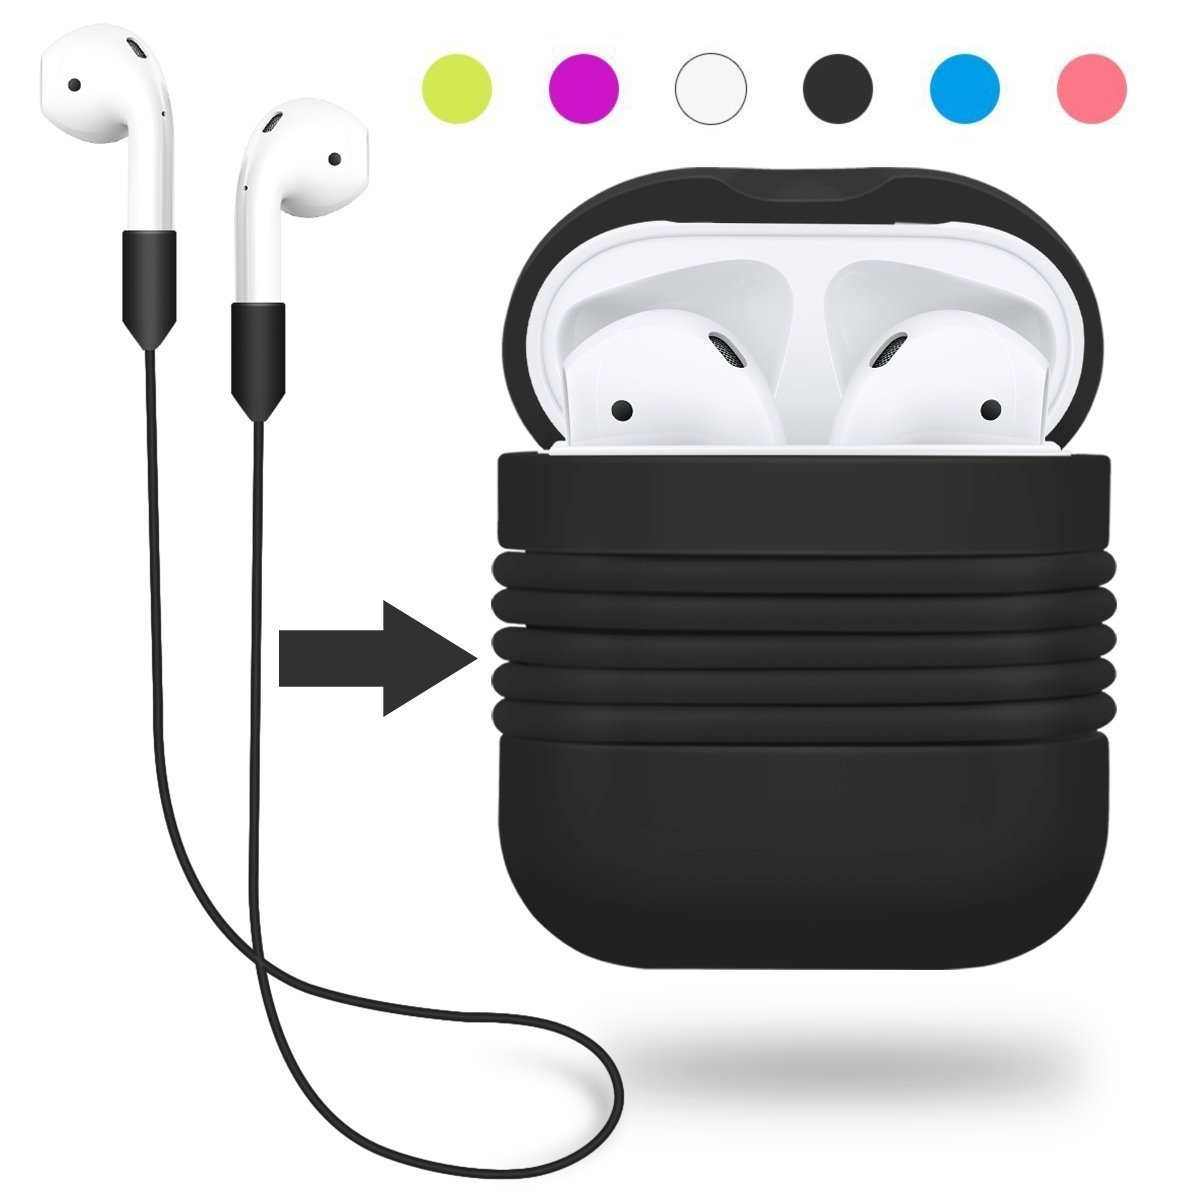 Bestyou Protective Carrying Case Bag for Apple AirPod Shockproof Silicone Cover Accessories Skin with Anti-lost Strap